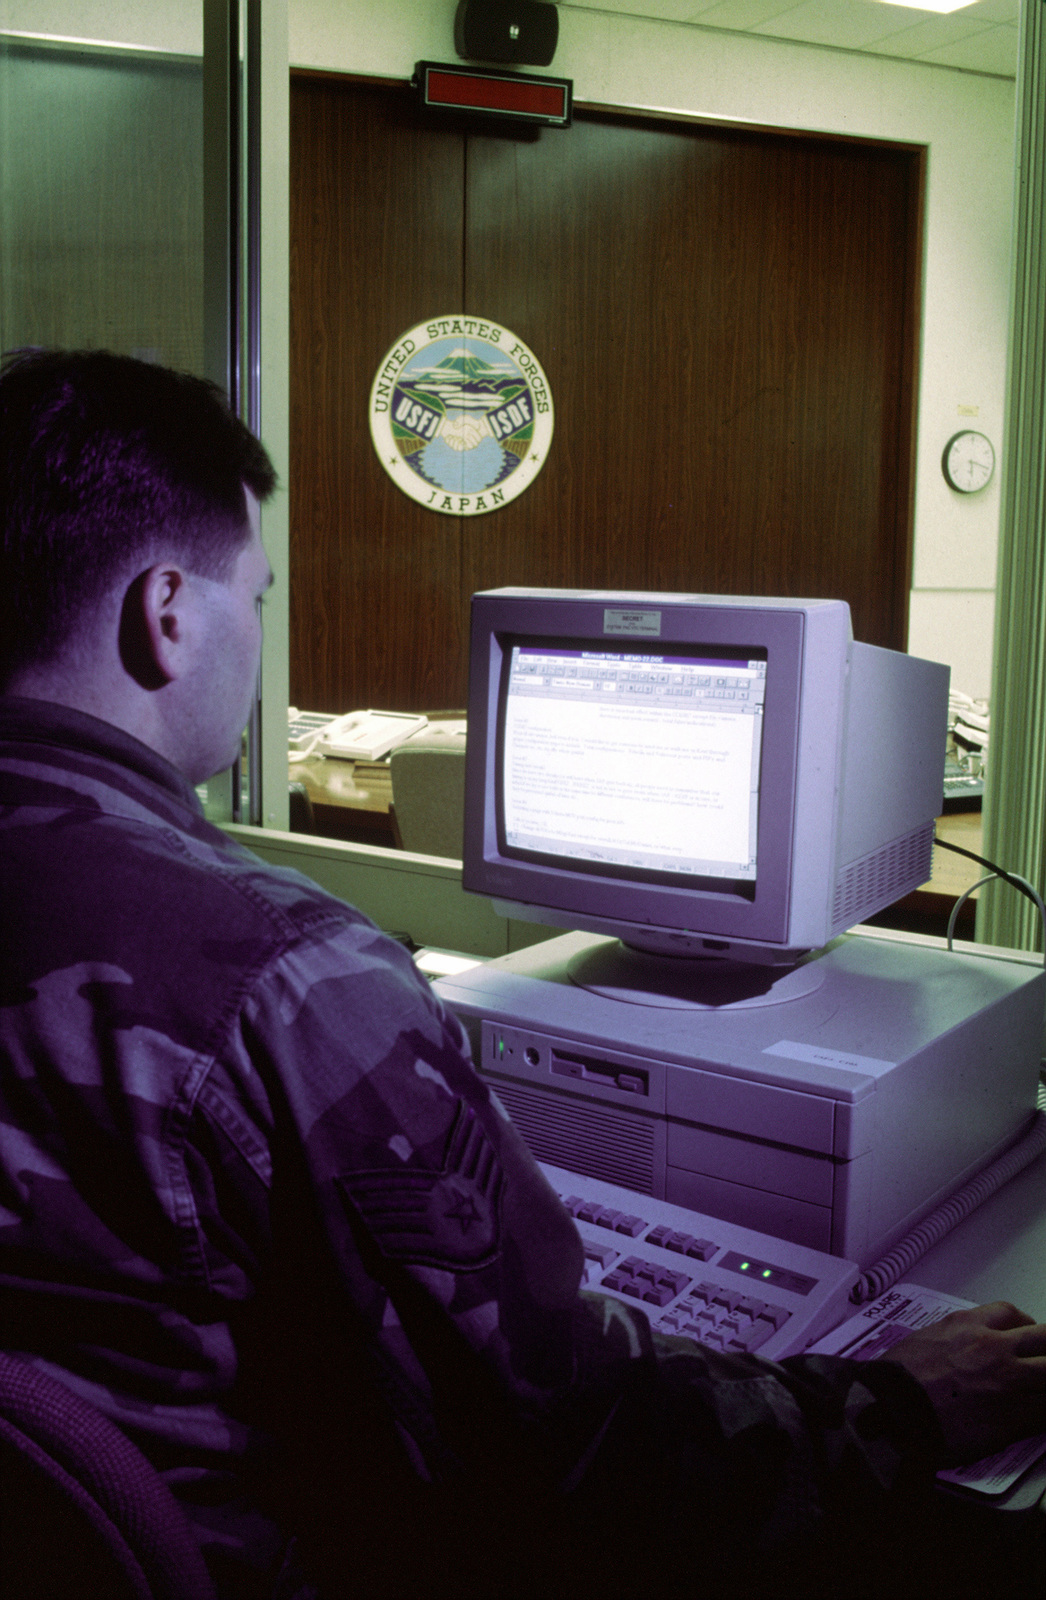 United States Air Force SSGT Issac D. Morrow checks his computer system in United States Forces Japan's (USFJ) Command Post at Yokota Air Base, Japan. SSGT Morrow and 4,000 other US military members are participating with Japan Self Defense Force (JSDF) members in KEEN EDGE '96, a joint/bilateral command post exercise from January 25 until February 2, 1996